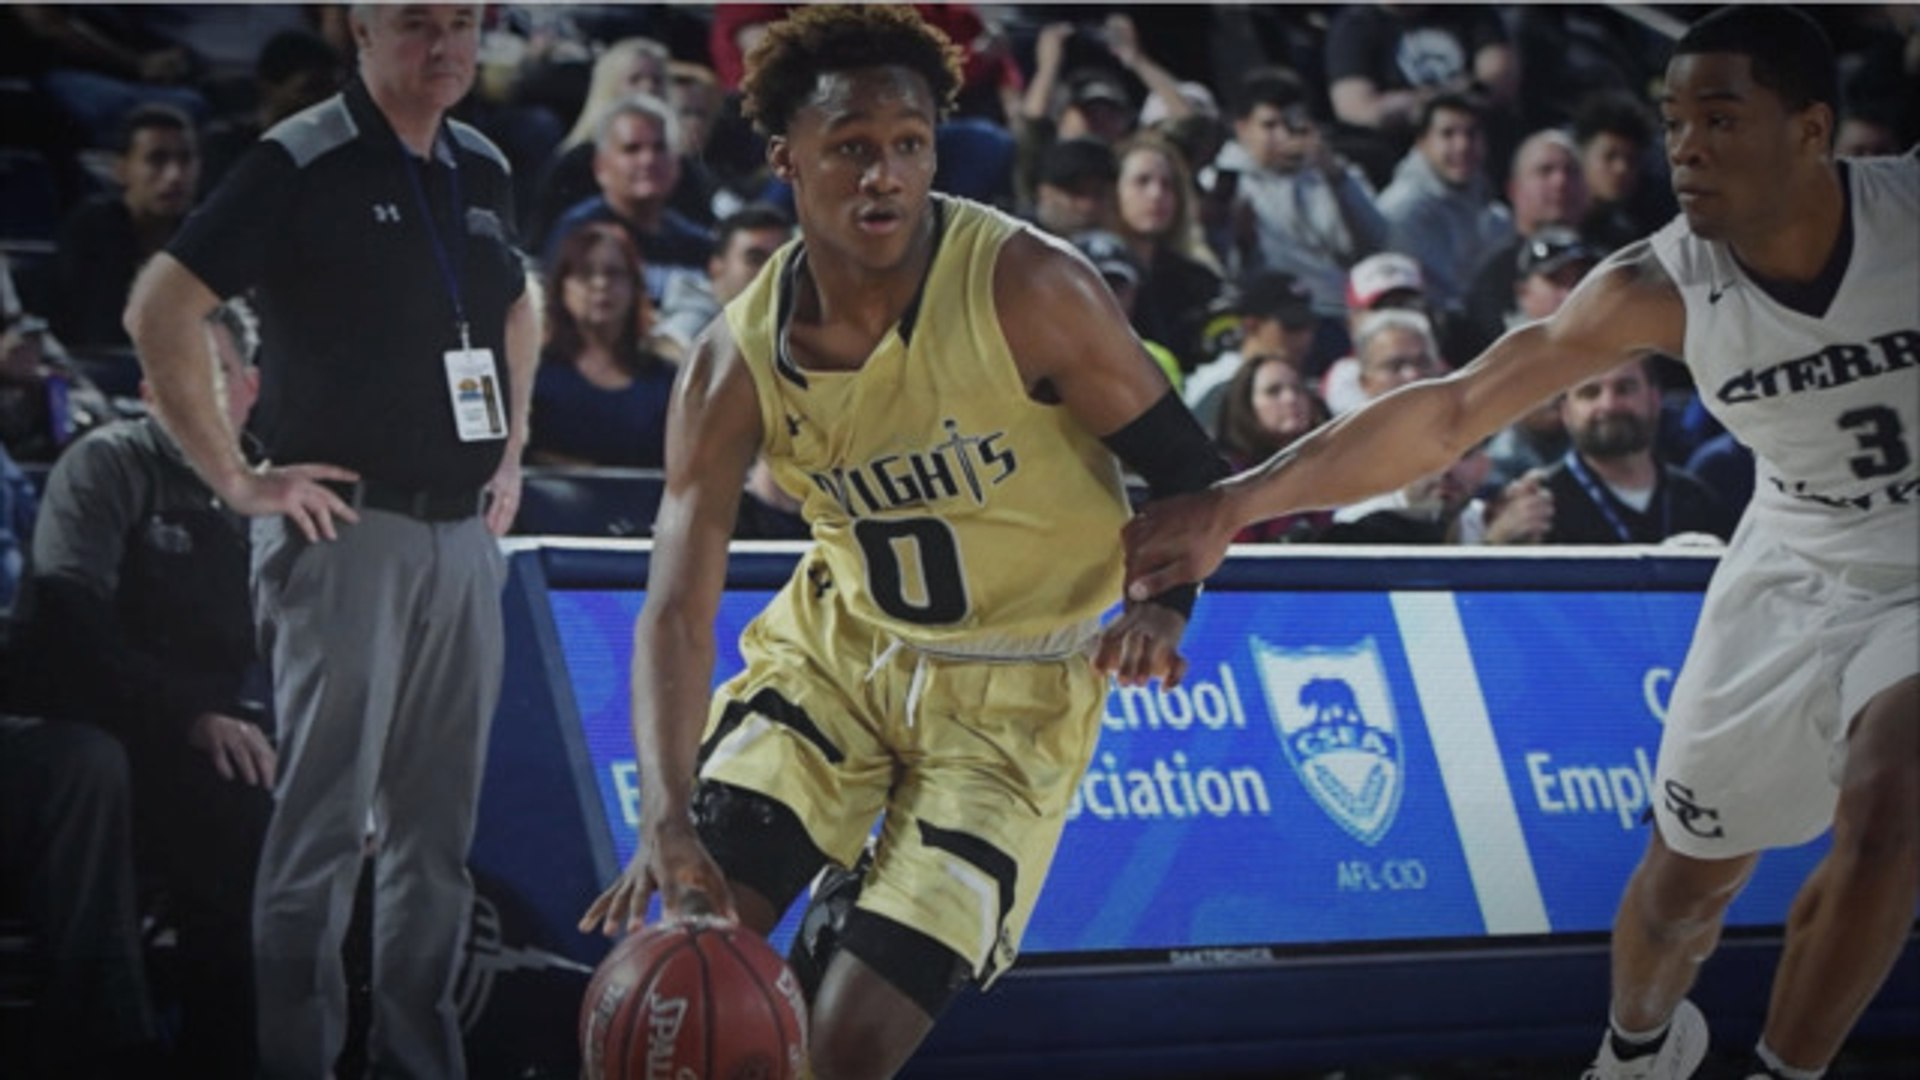 Bishop Montgomery Game Slideshow - February 24, 2018